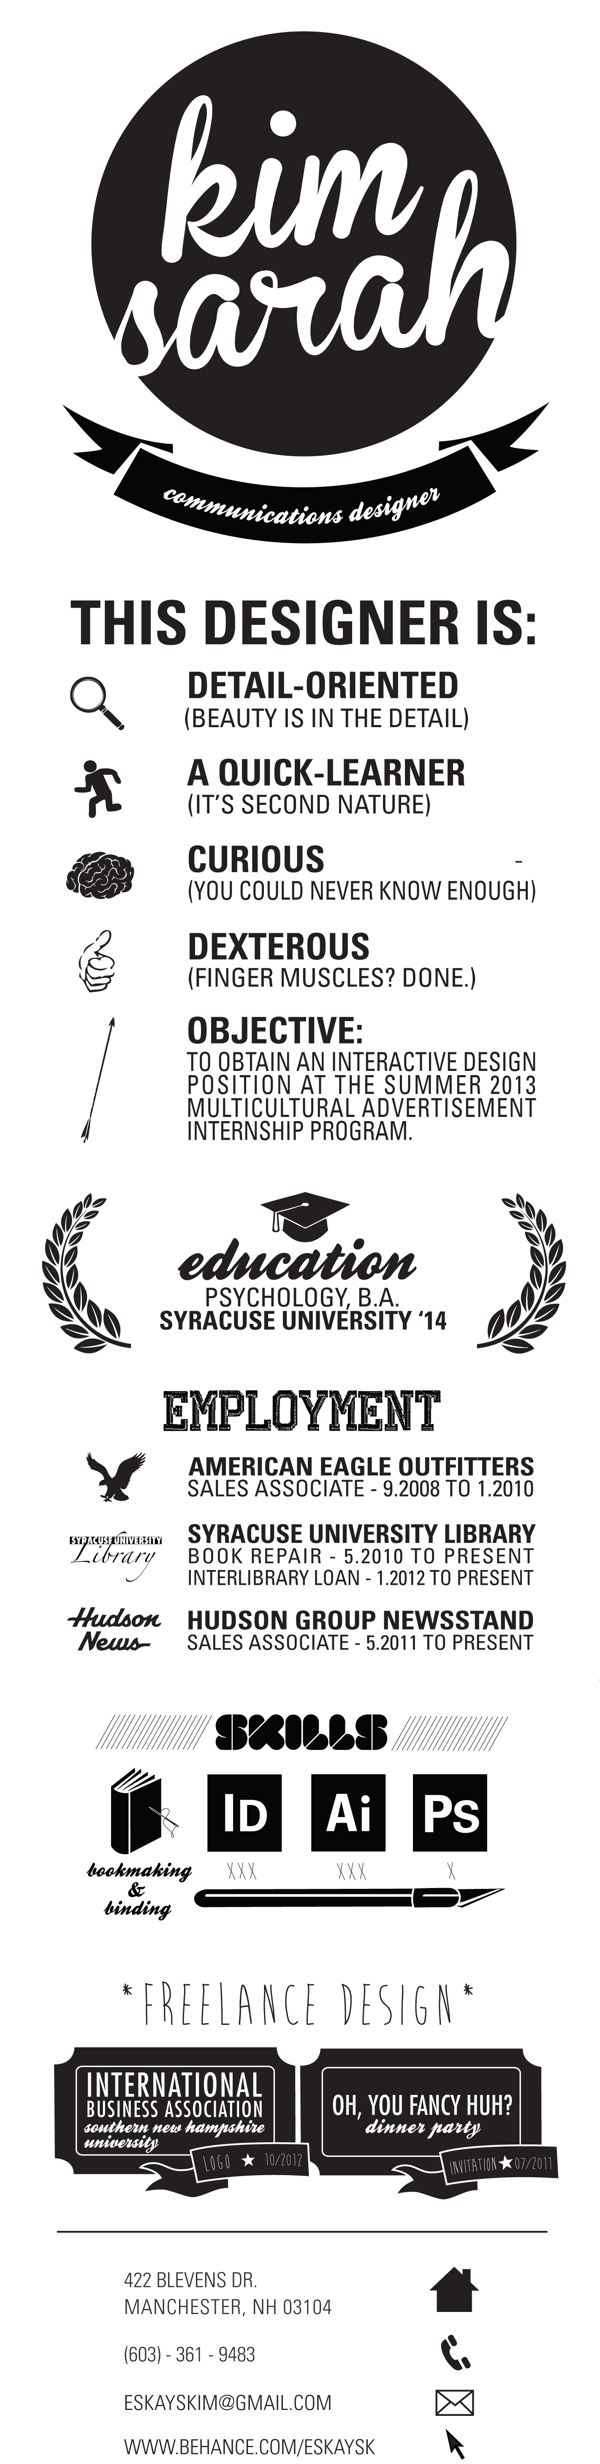 Picnictoimpeachus  Outstanding  Ideas About Infographic Resume On Pinterest  My Portfolio  With Inspiring  Ideas About Infographic Resume On Pinterest  My Portfolio Resume And Resume Design With Appealing Resume Sample For Administrative Assistant Also Job Resumes Templates In Addition Mft Intern Resume And Recent College Graduate Resume Examples As Well As Sample Resume For Caregiver Additionally Scholarship Resume Templates From Pinterestcom With Picnictoimpeachus  Inspiring  Ideas About Infographic Resume On Pinterest  My Portfolio  With Appealing  Ideas About Infographic Resume On Pinterest  My Portfolio Resume And Resume Design And Outstanding Resume Sample For Administrative Assistant Also Job Resumes Templates In Addition Mft Intern Resume From Pinterestcom